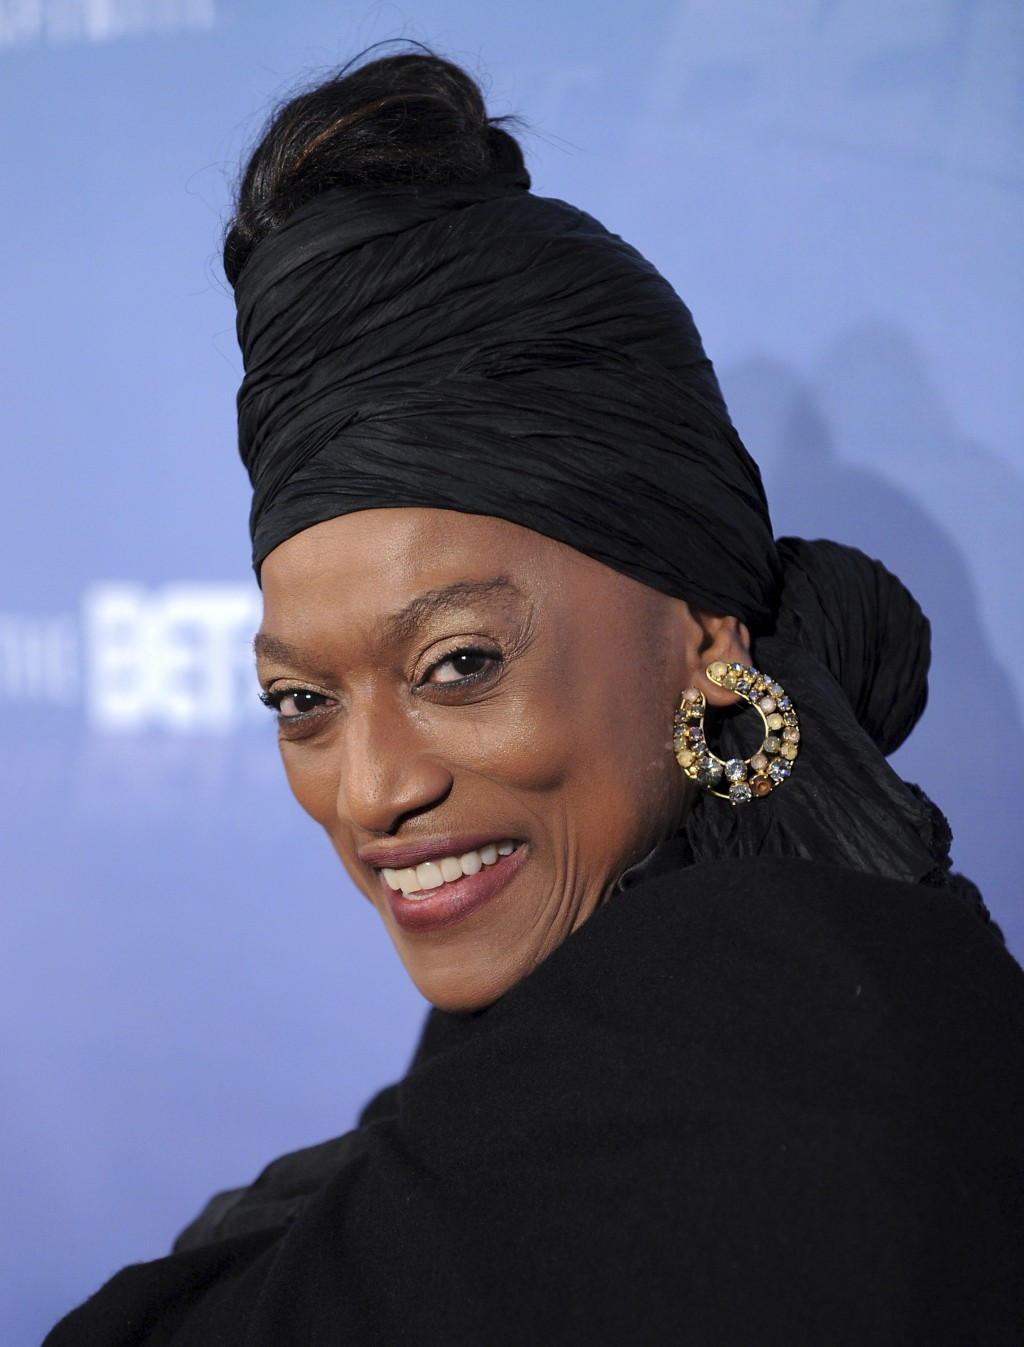 FILE - This Jan. 17, 2009 file photo shows opera singer Jessye Norman at the BET Honors at the Warner Theatre in Washington. Norman died, Monday, Sept